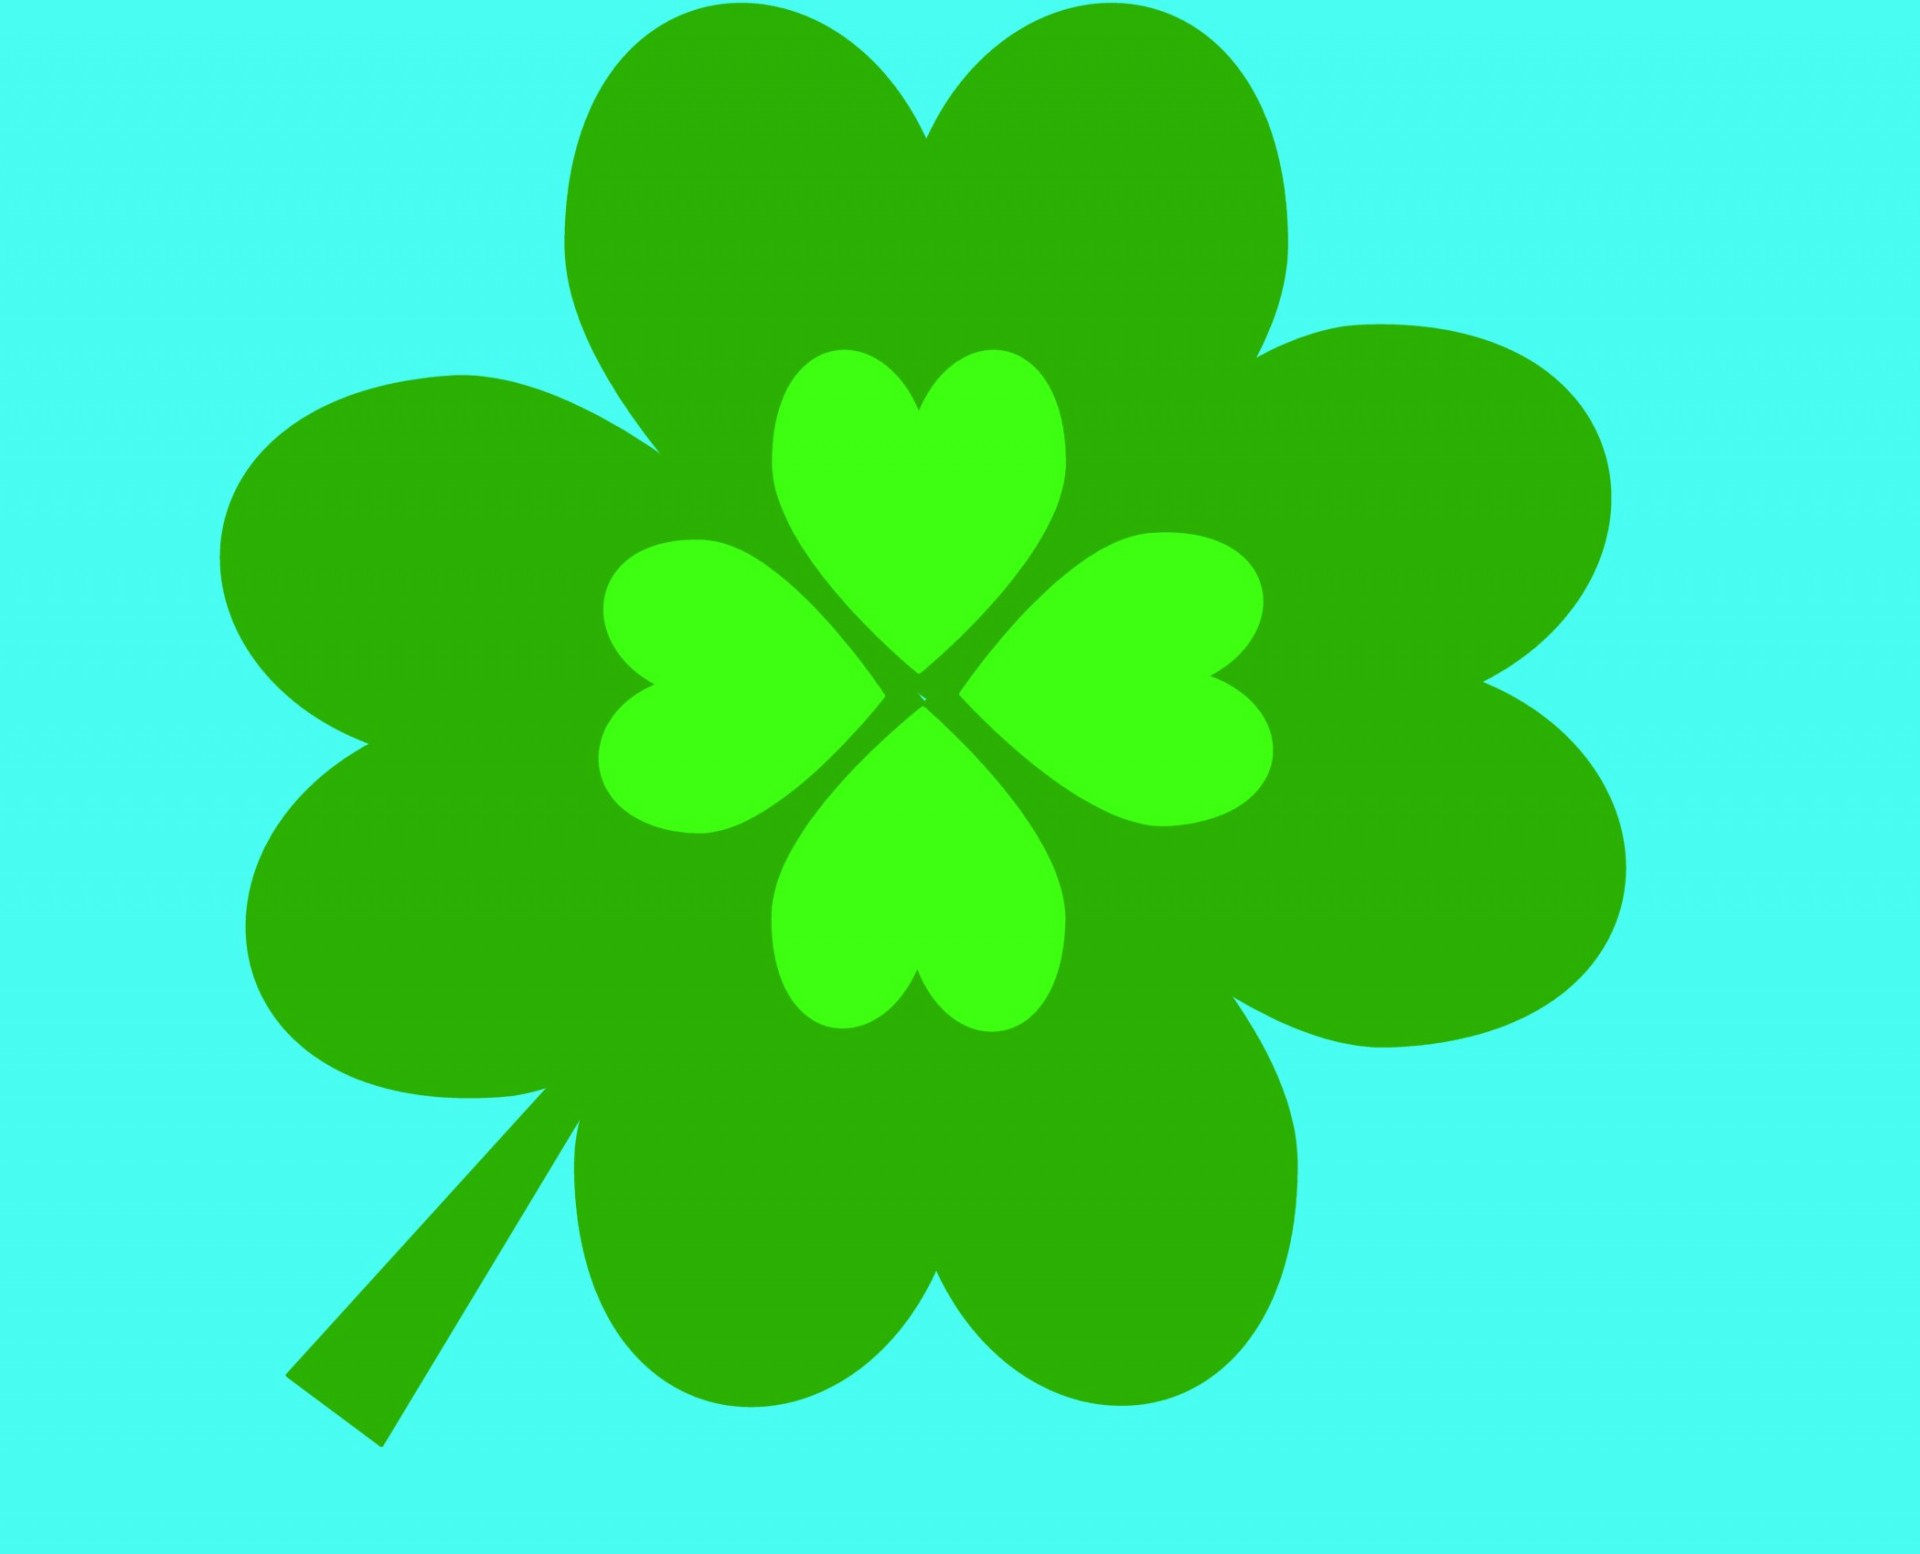 1920x1554 Four Leaf Clover Clip Art Free Stock Photo